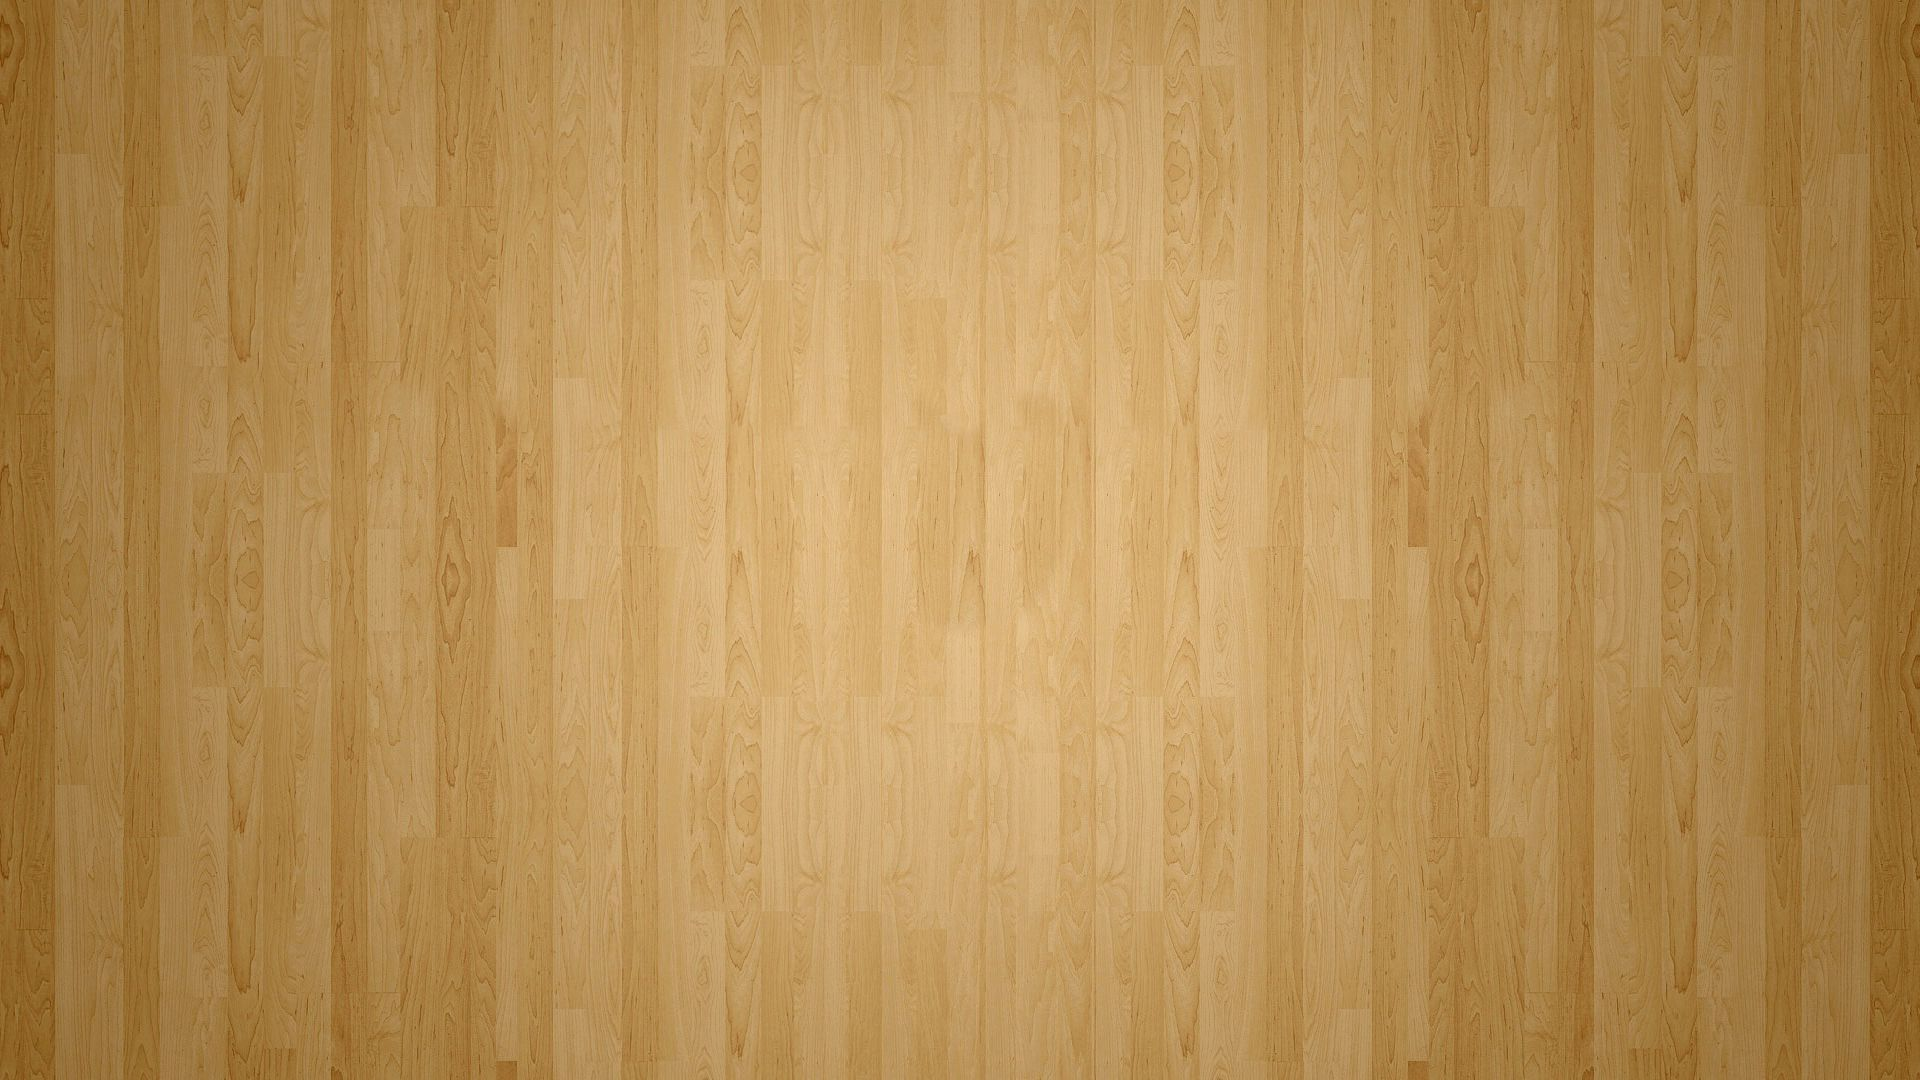 Images of Wooden Floor | 1920x1080